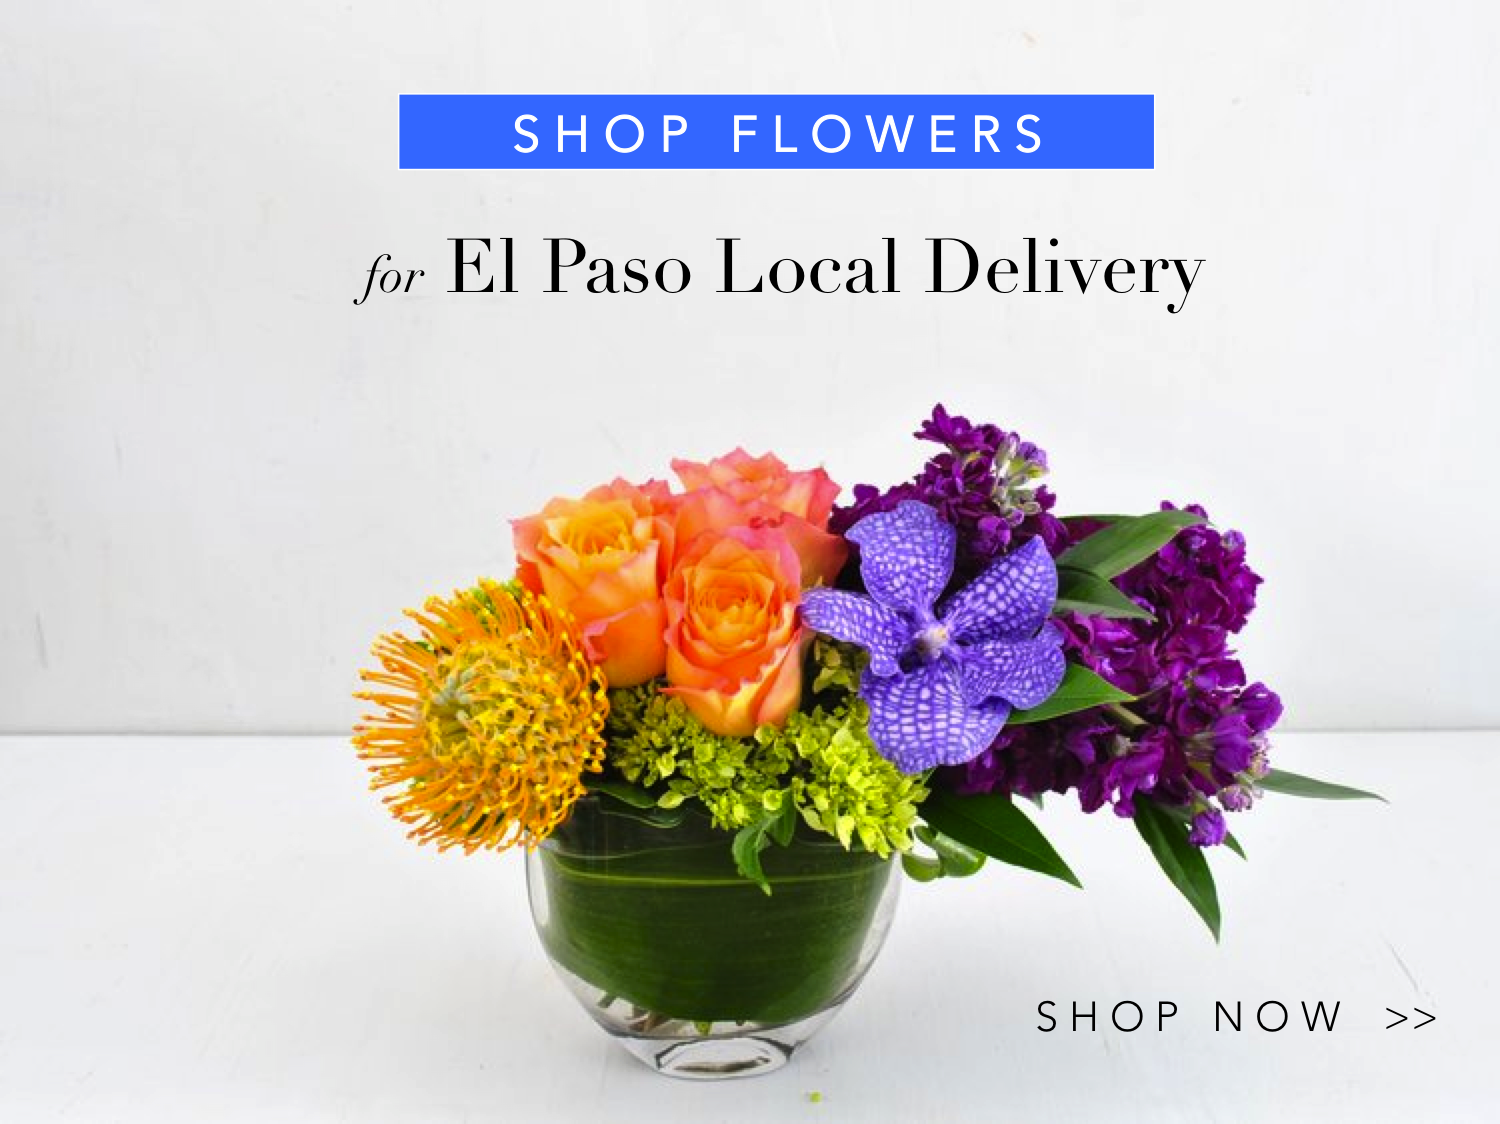 0-angies-floral-designs-d-sun-fl-o-wer-send-gifts-79912-handcrafted-gifts-same-day-delivery-roses-flowershop-el-paso-texas-79912-shop-online-flowers-florist-best-florist.png